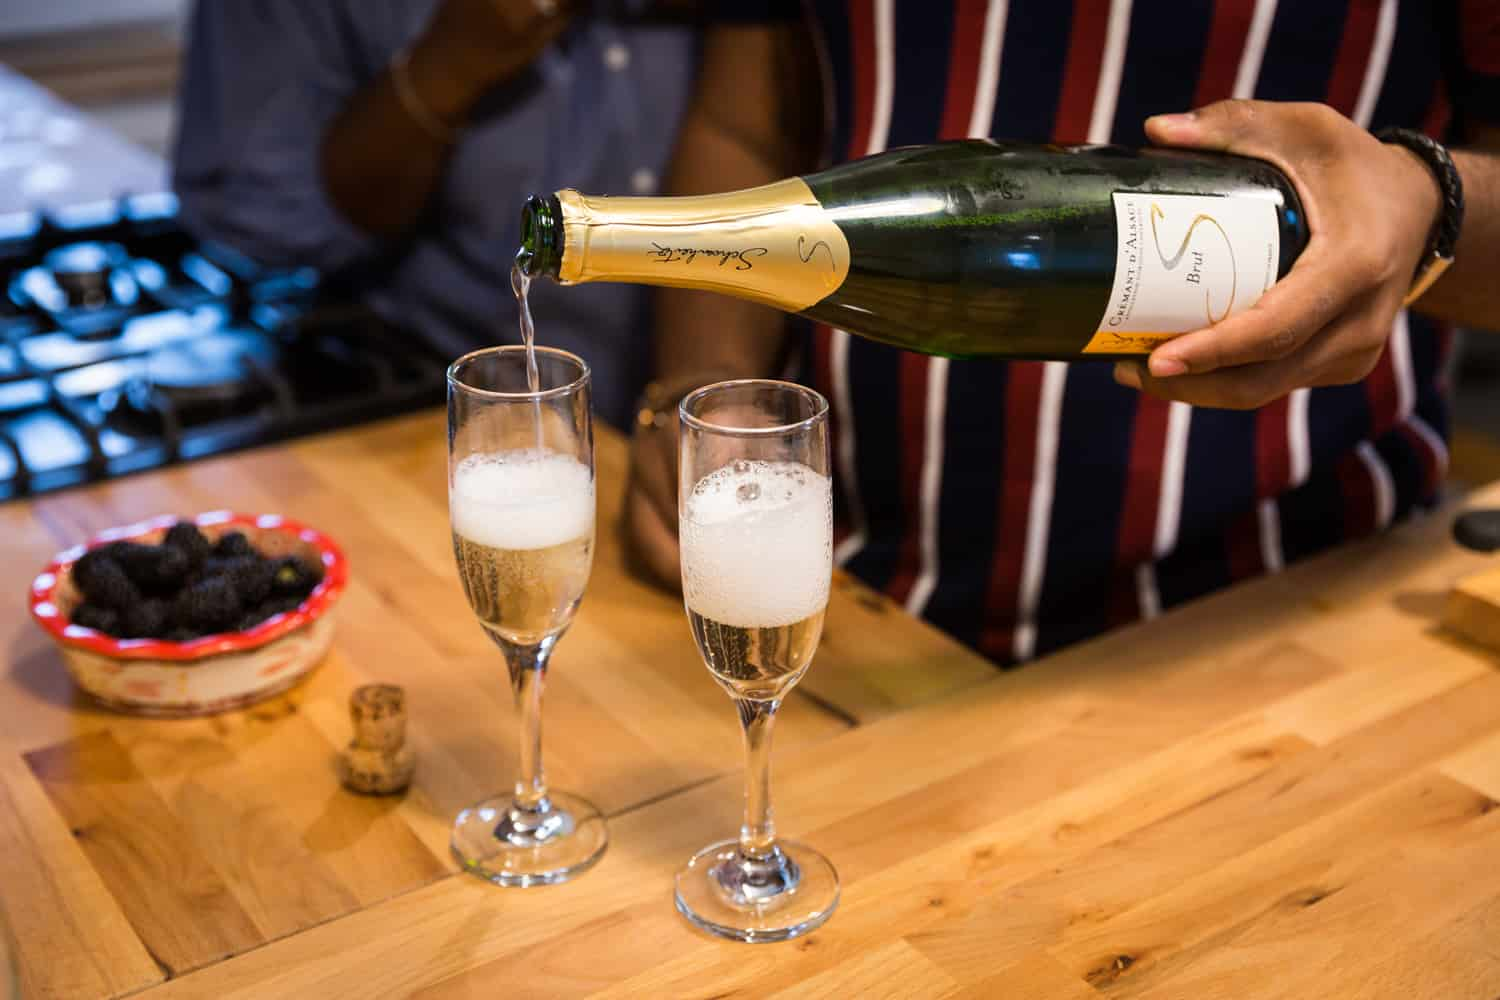 Bottle of champagne being poured into fluted glass on wooden counter